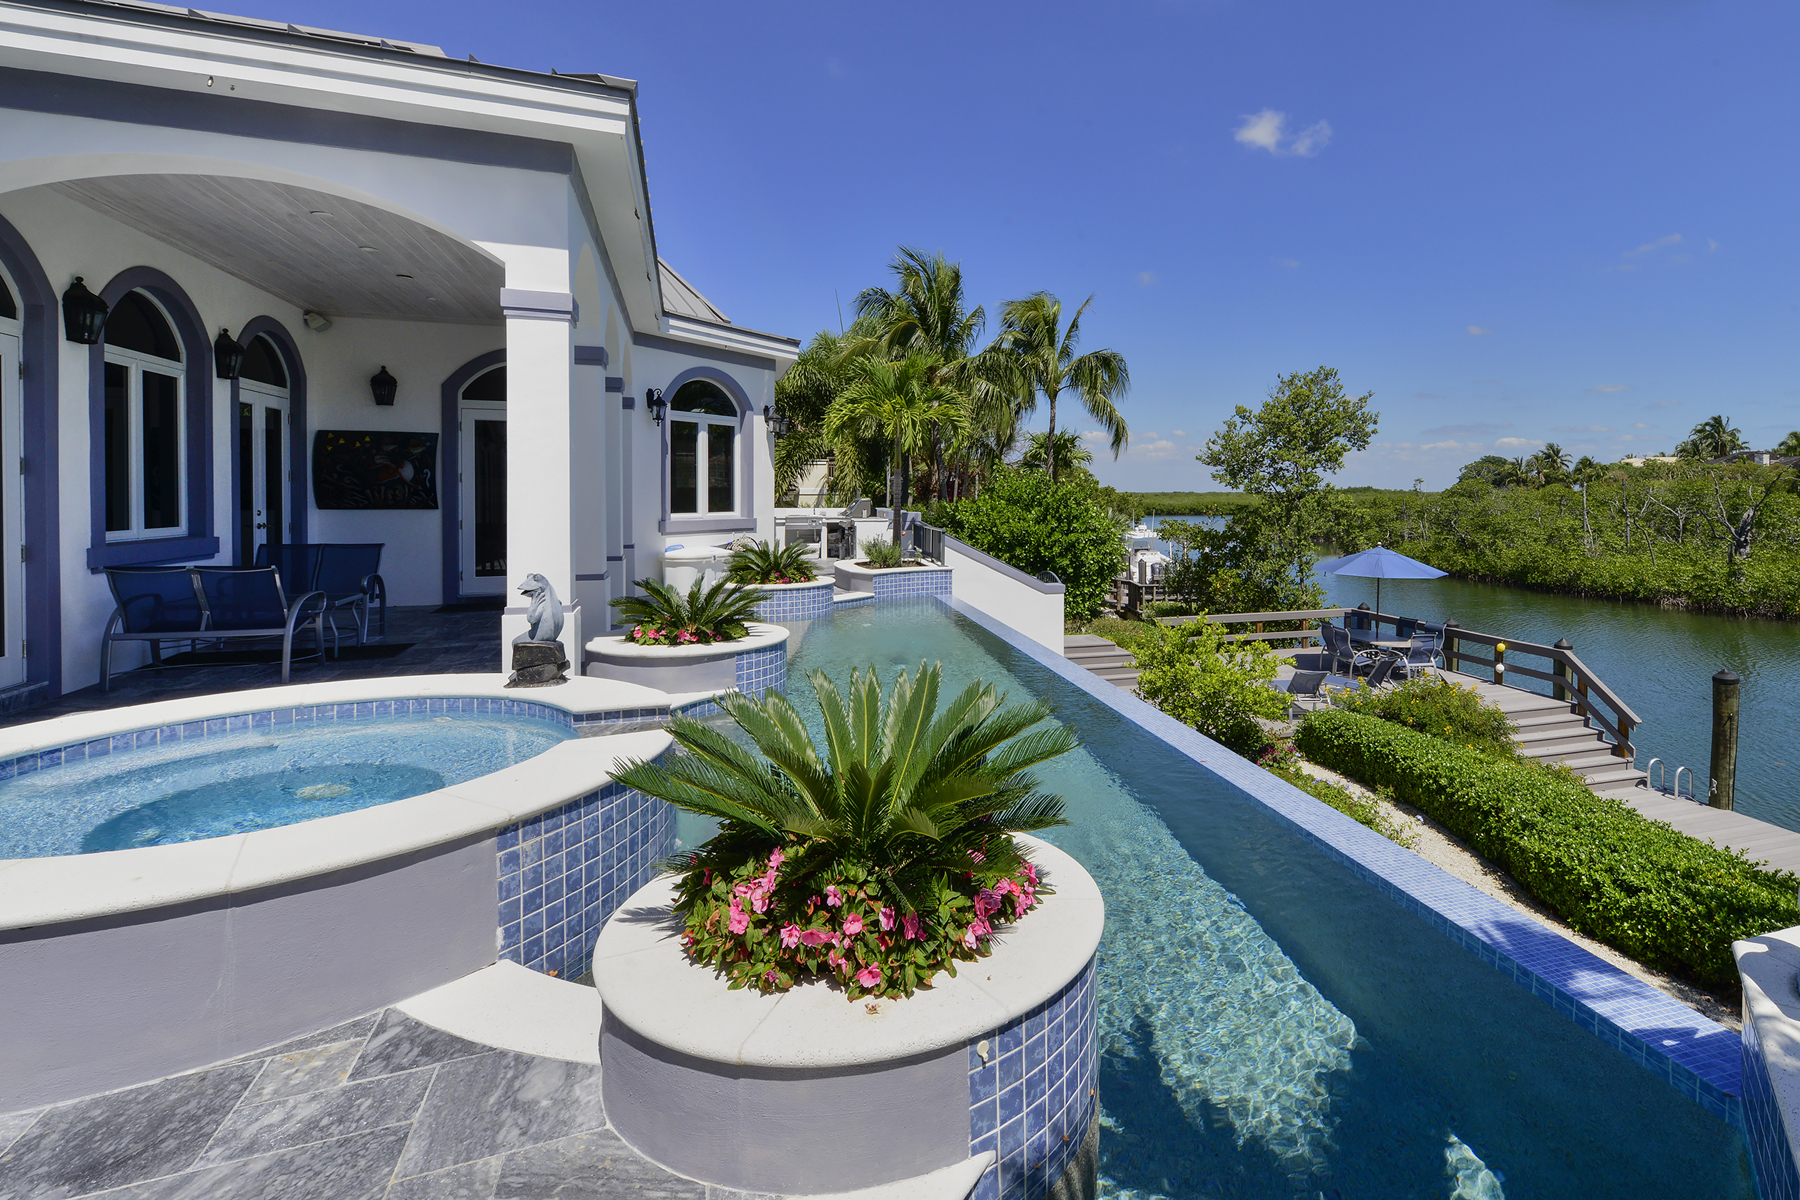 Single Family Home for Sale at Custom Built Waterfront Home at Ocean Reef 17 North Pelican Drive Key Largo, Florida, 33037 United States